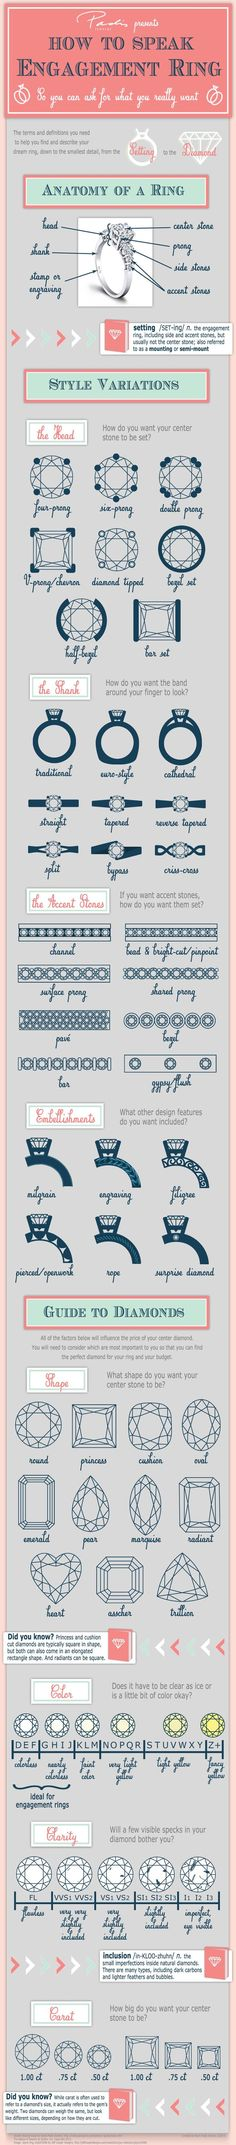 How to Speak Engagement Ring Infographic - So you can ask for what you really want!